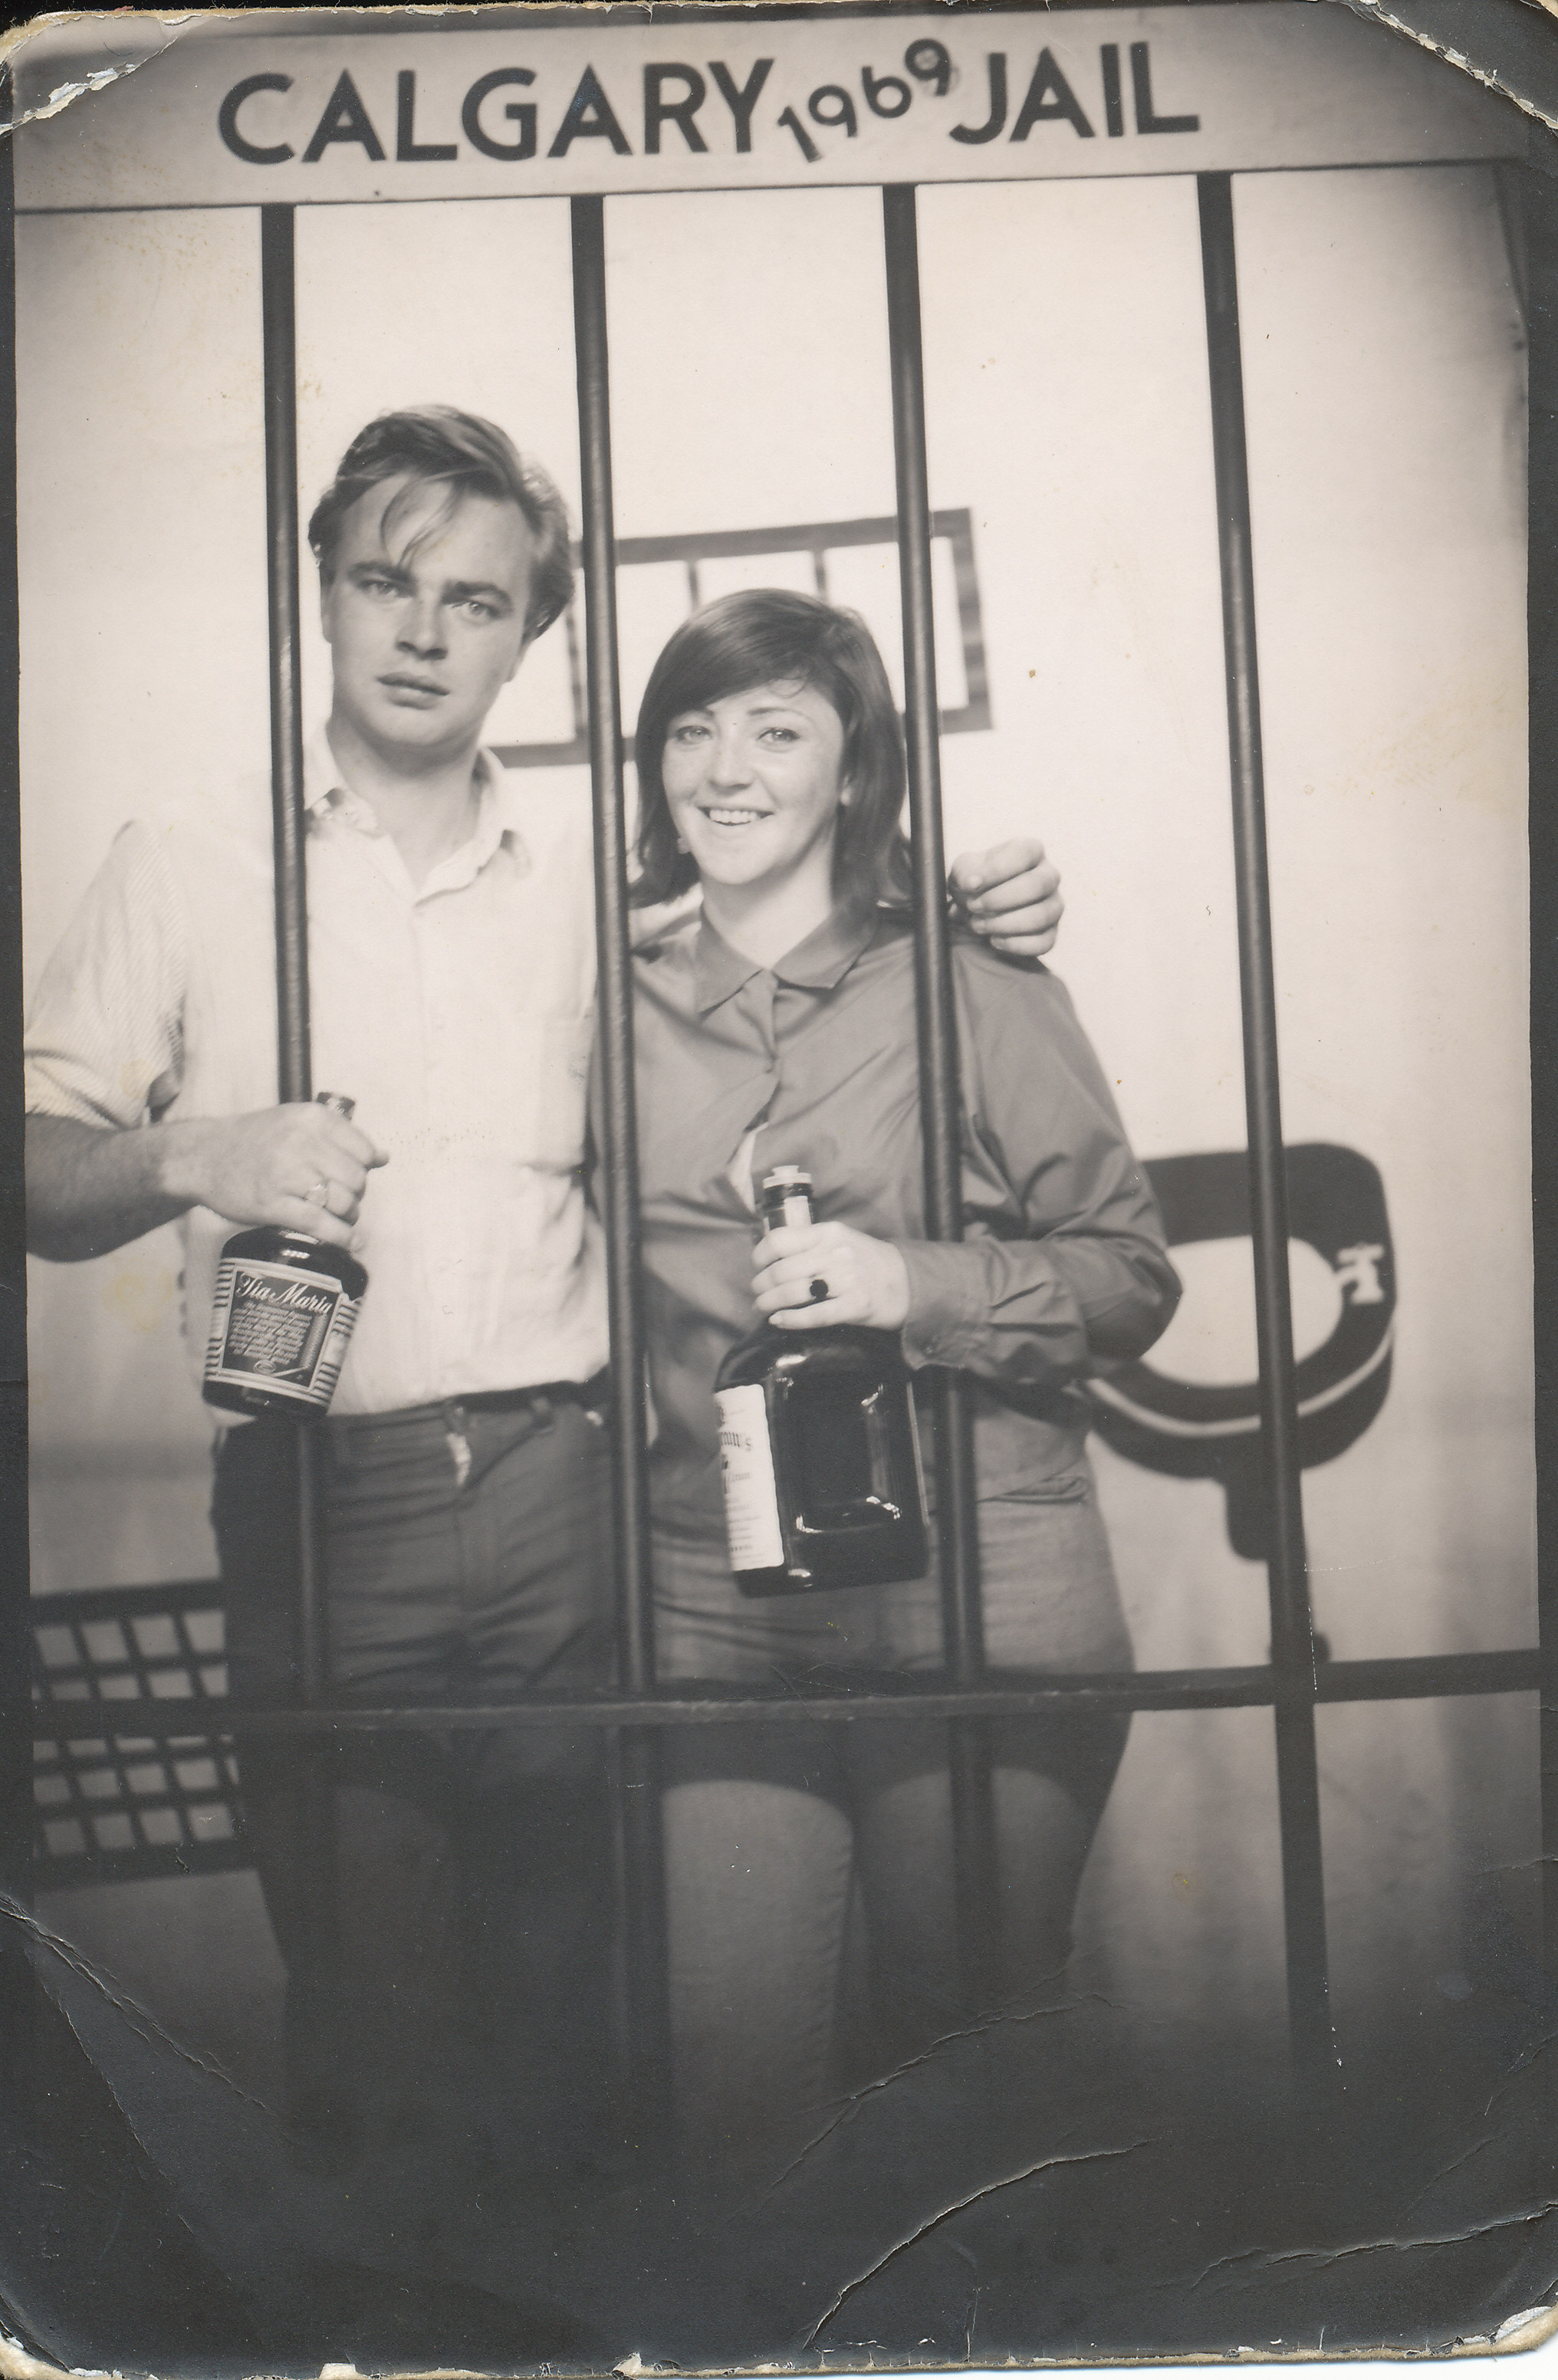 young man and women both holding liquor bottles and behind mock prison cell bars